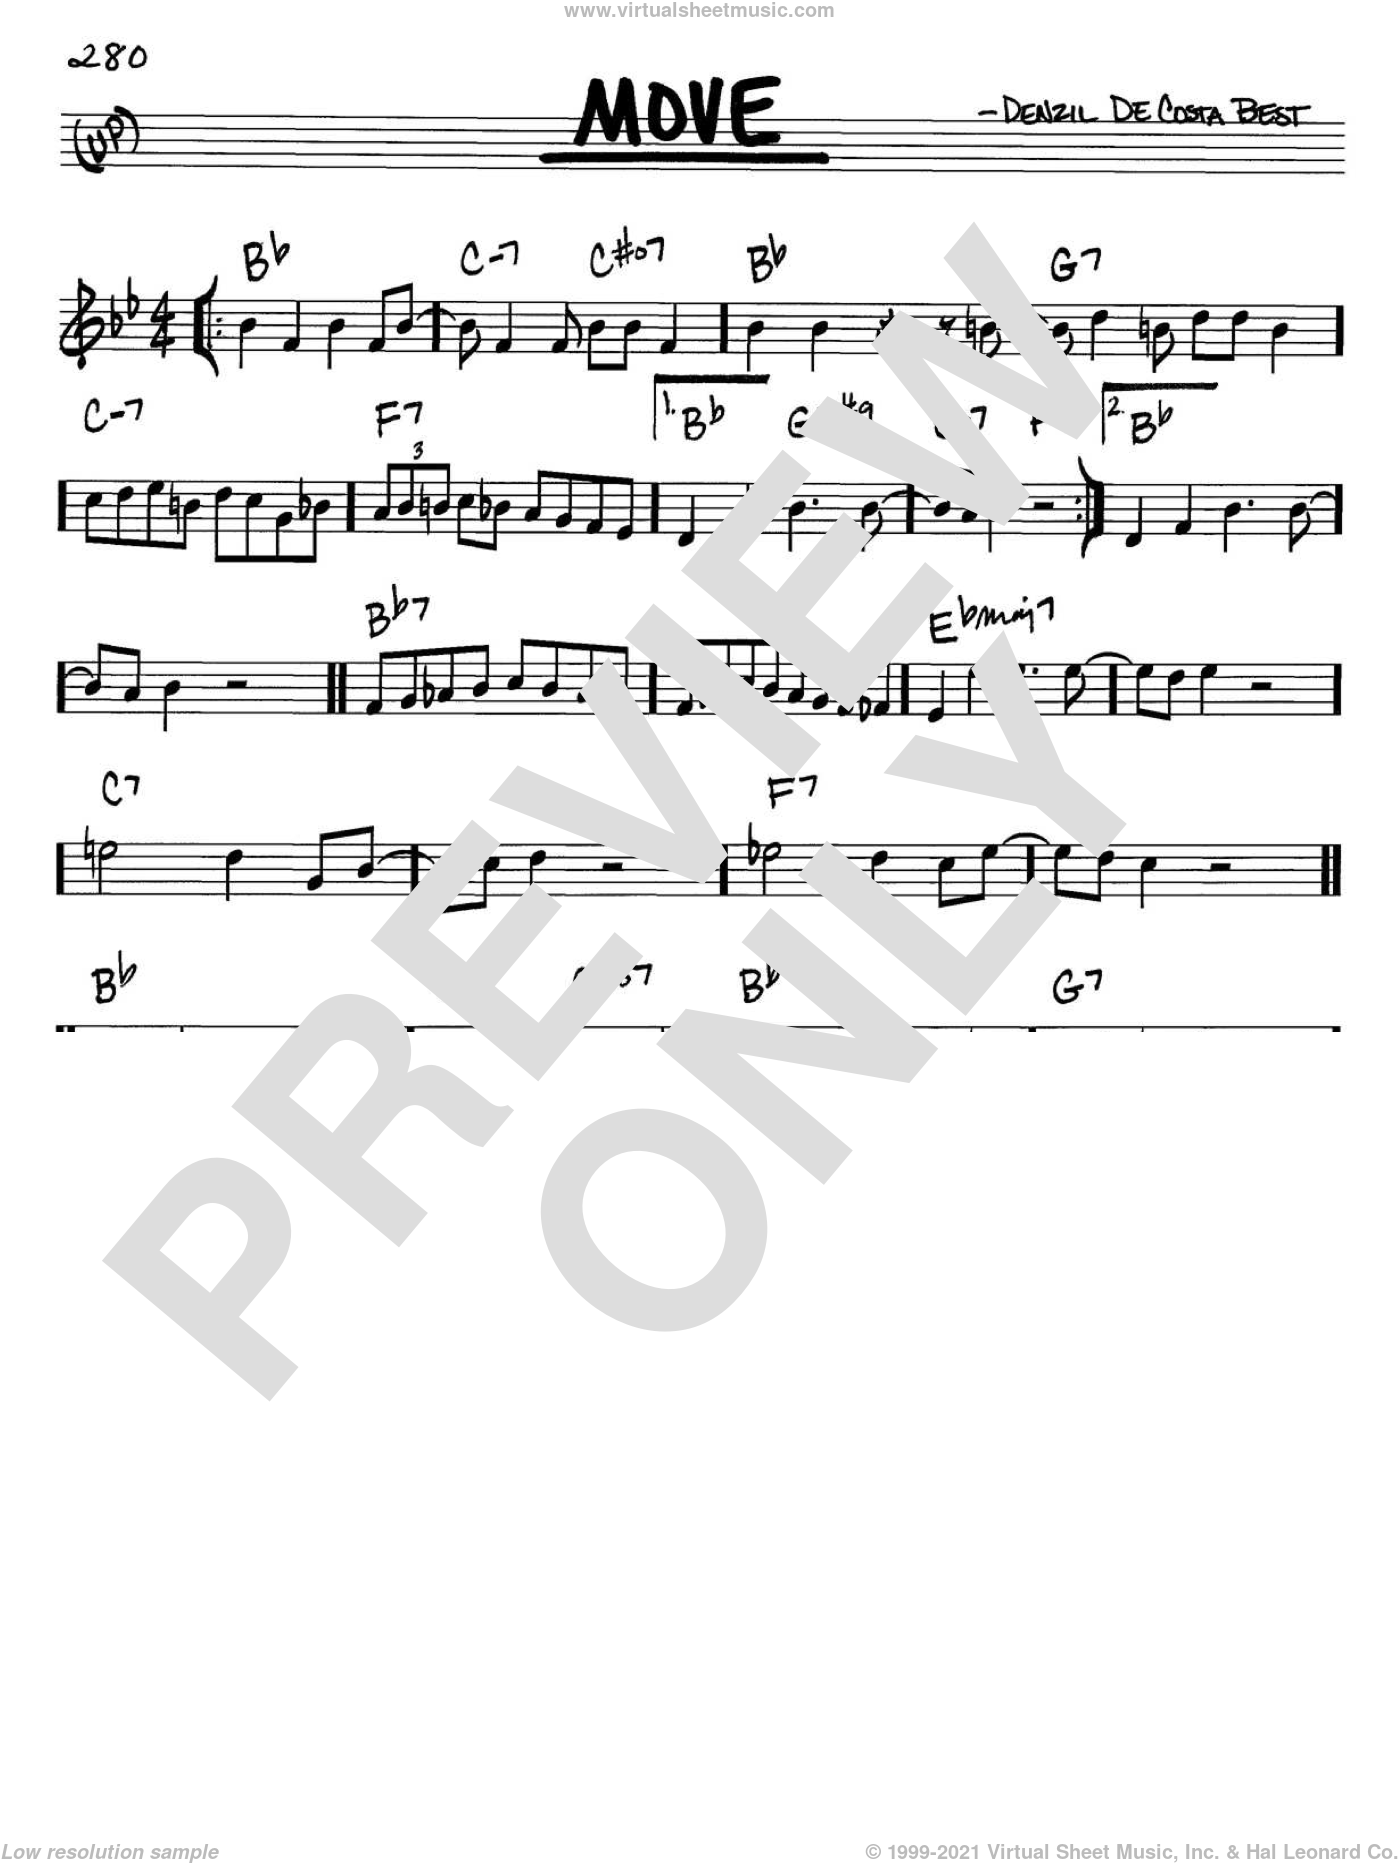 Move sheet music for voice and other instruments (C) by Denzil De Costa Best